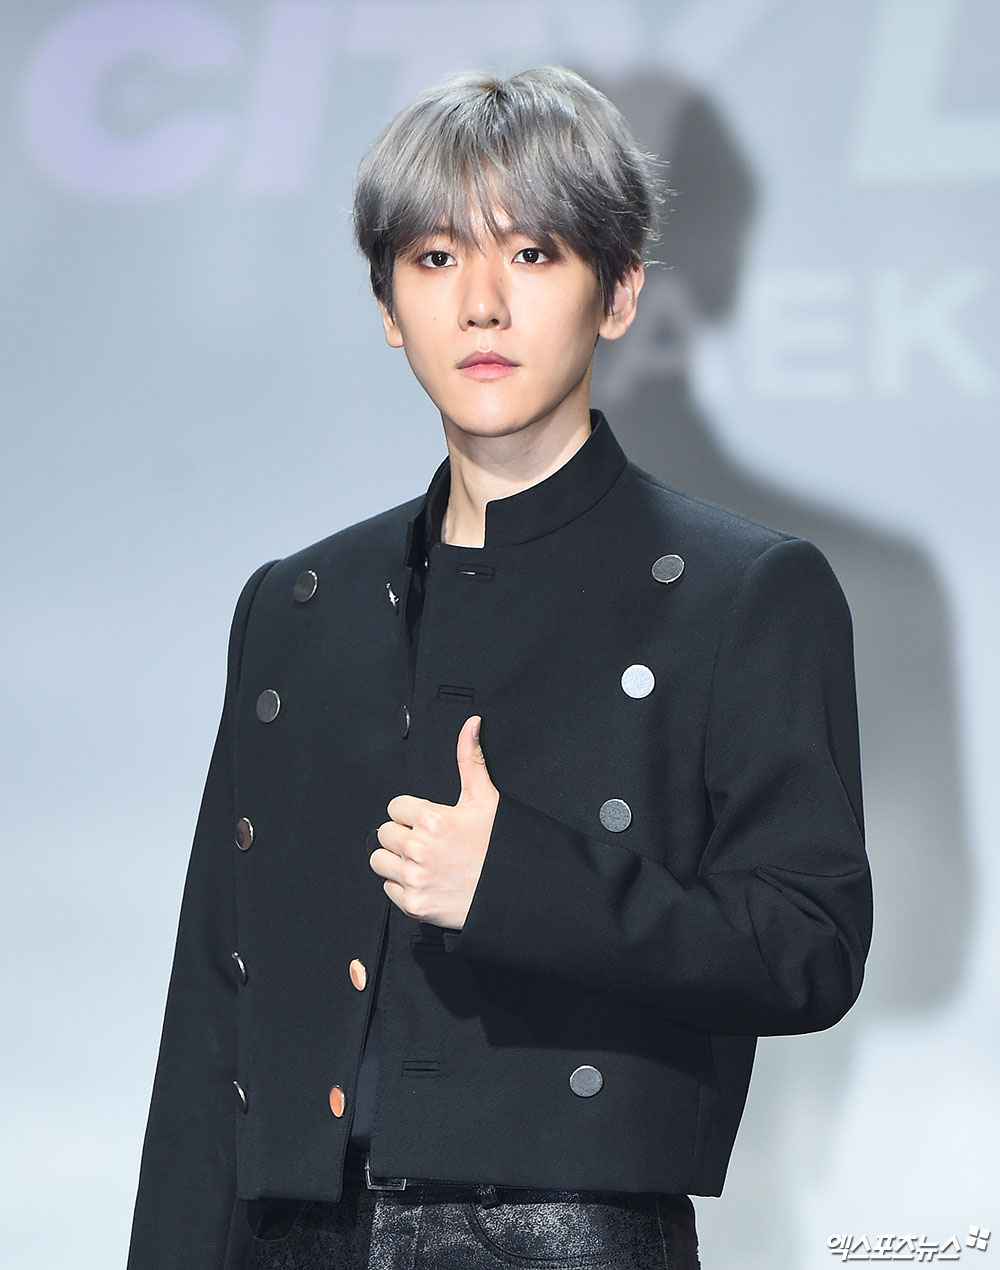 DAILYEXO — Baekhyun - 190710 'City Lights' Listening Session